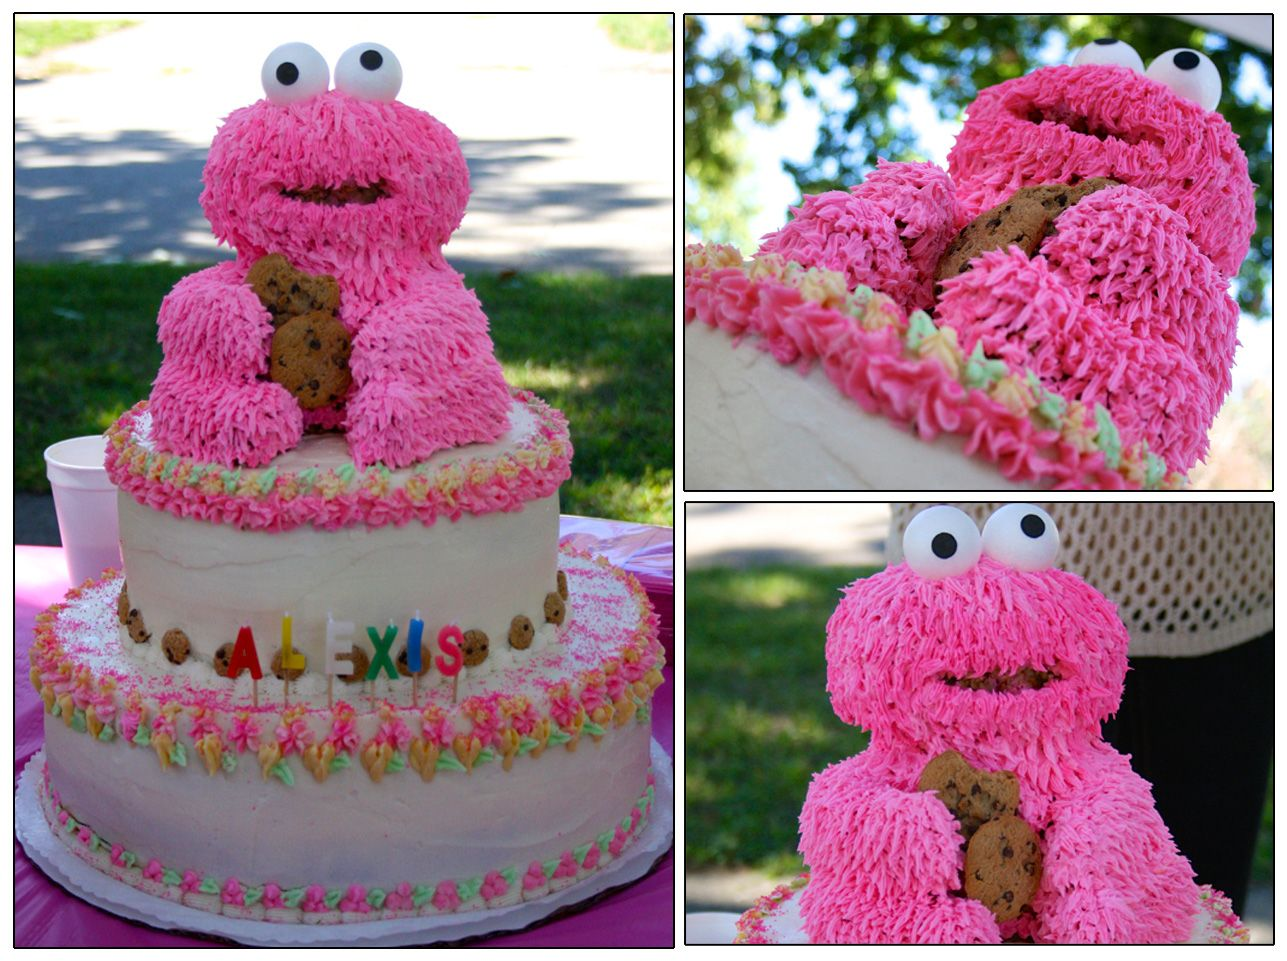 pink cookie monster birthday cake made out of rice krispie treats on birthday cake made from cookies